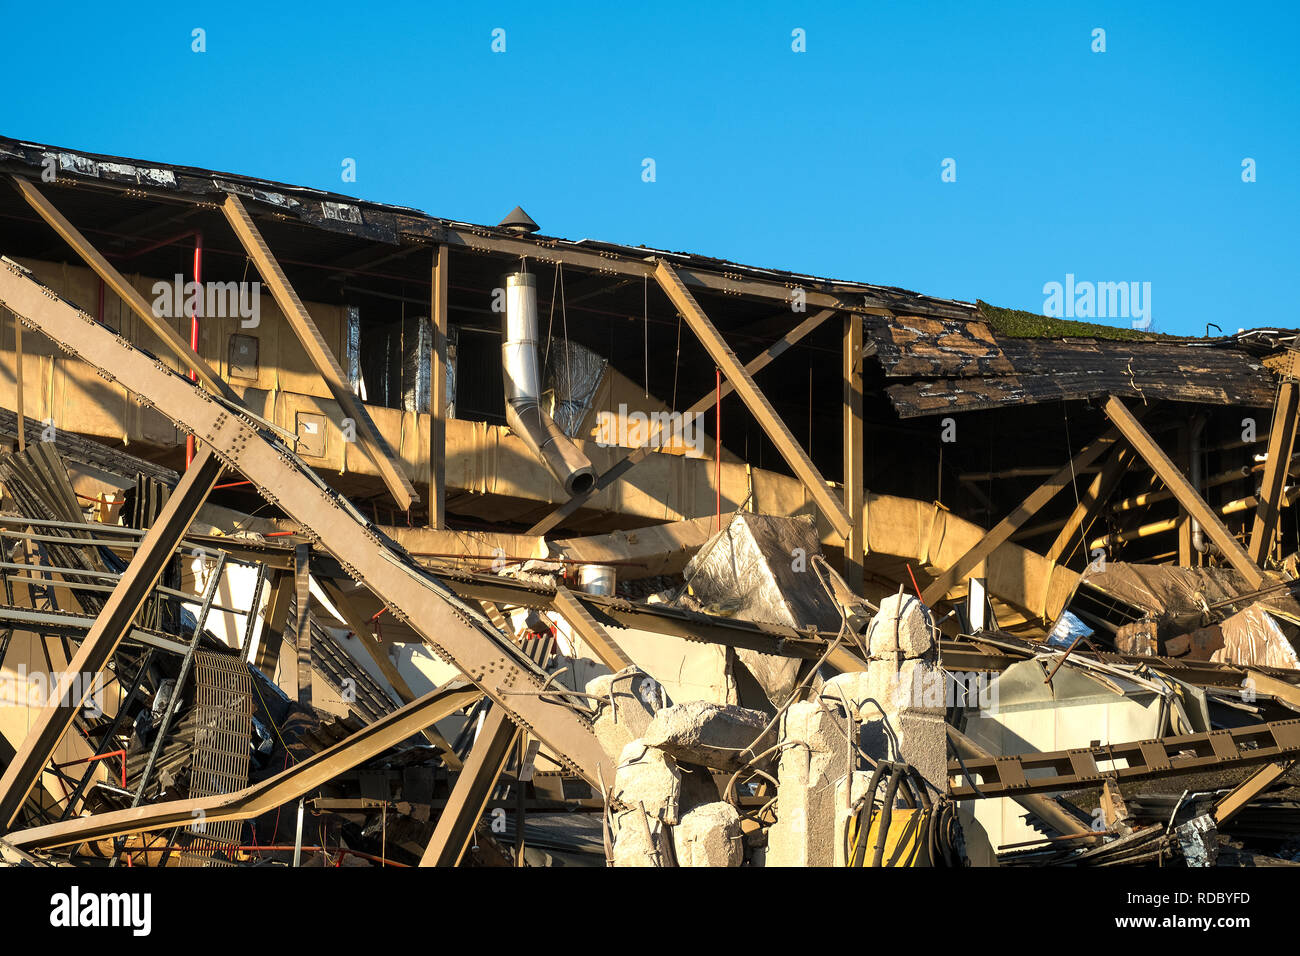 Twisted and broken metal from a demolished factory background - Stock Image